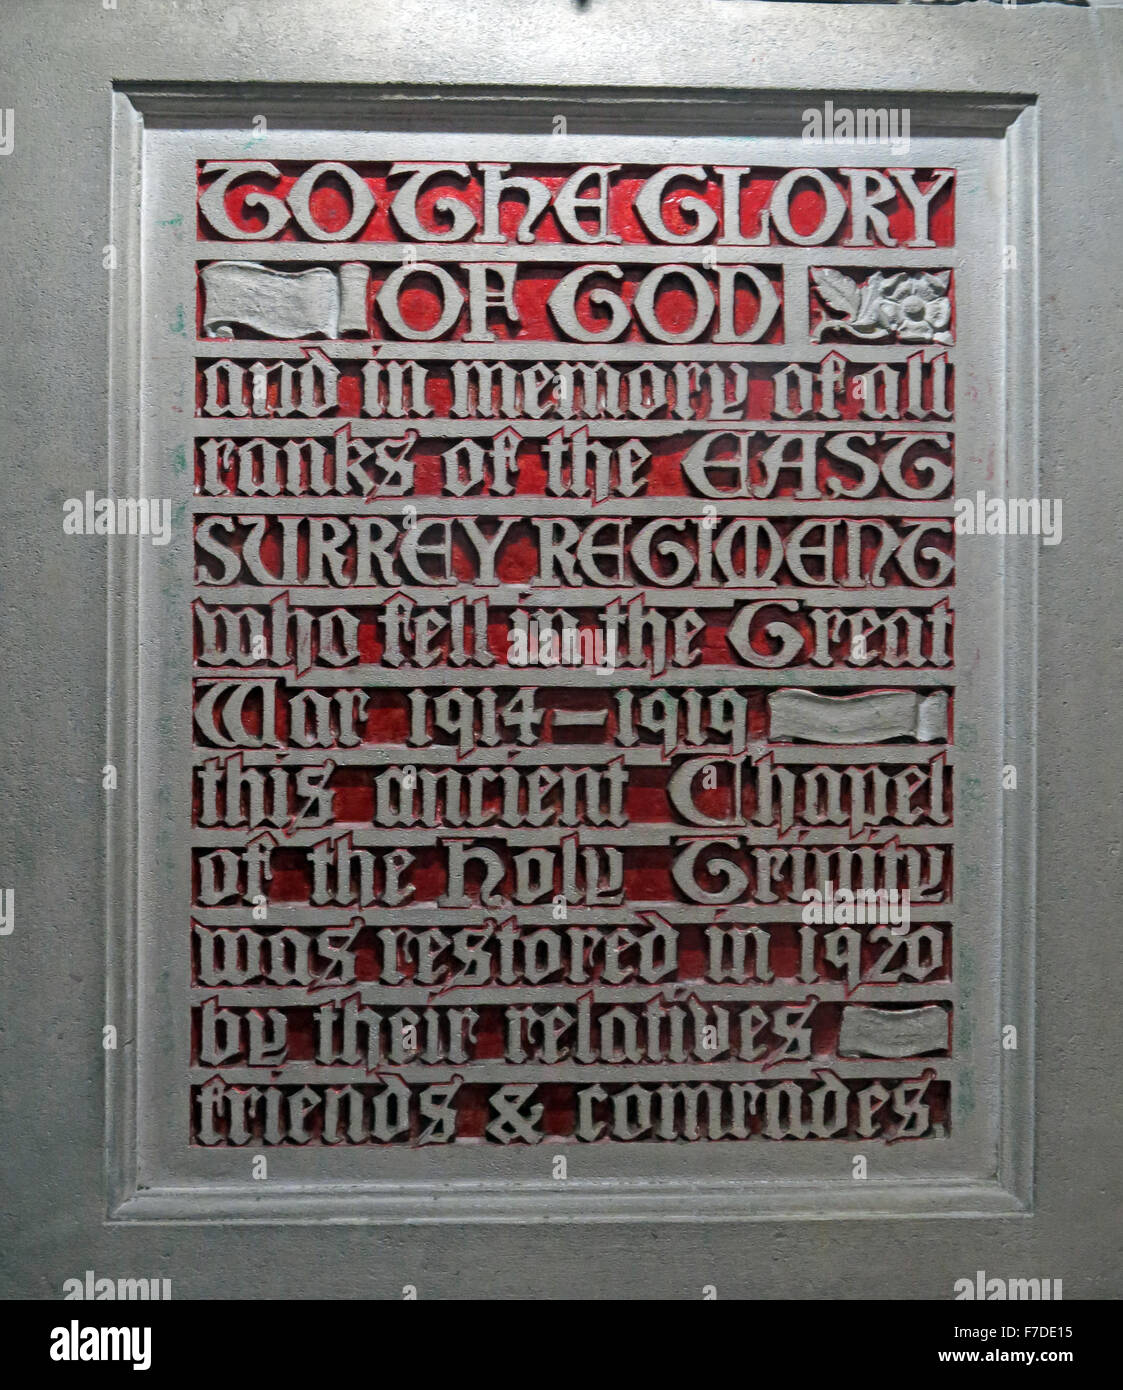 To,The,Glory,of,God,and,in,the,memory,of,all,ranks,of,the,East,Surrey,Regiment,who,fell,in,the,great,war,1914-1919.,This,ancient,chapel,of,the,holy,Grimty,was,restored,by,their,relatives,friends,and,comrades.,and,in,the,memory,of,all,ranks,of,the,East,Surrey,Regiment,on-thames,thames,plaque,stone,GoTonySmith,ESR,red,cream,ivory,record,monument,All Saints,Kingston-on-thames,London,England,UK,All Saints,town,on,Thames,Buy Pictures of,Buy Images Of,East Surrey Regiment